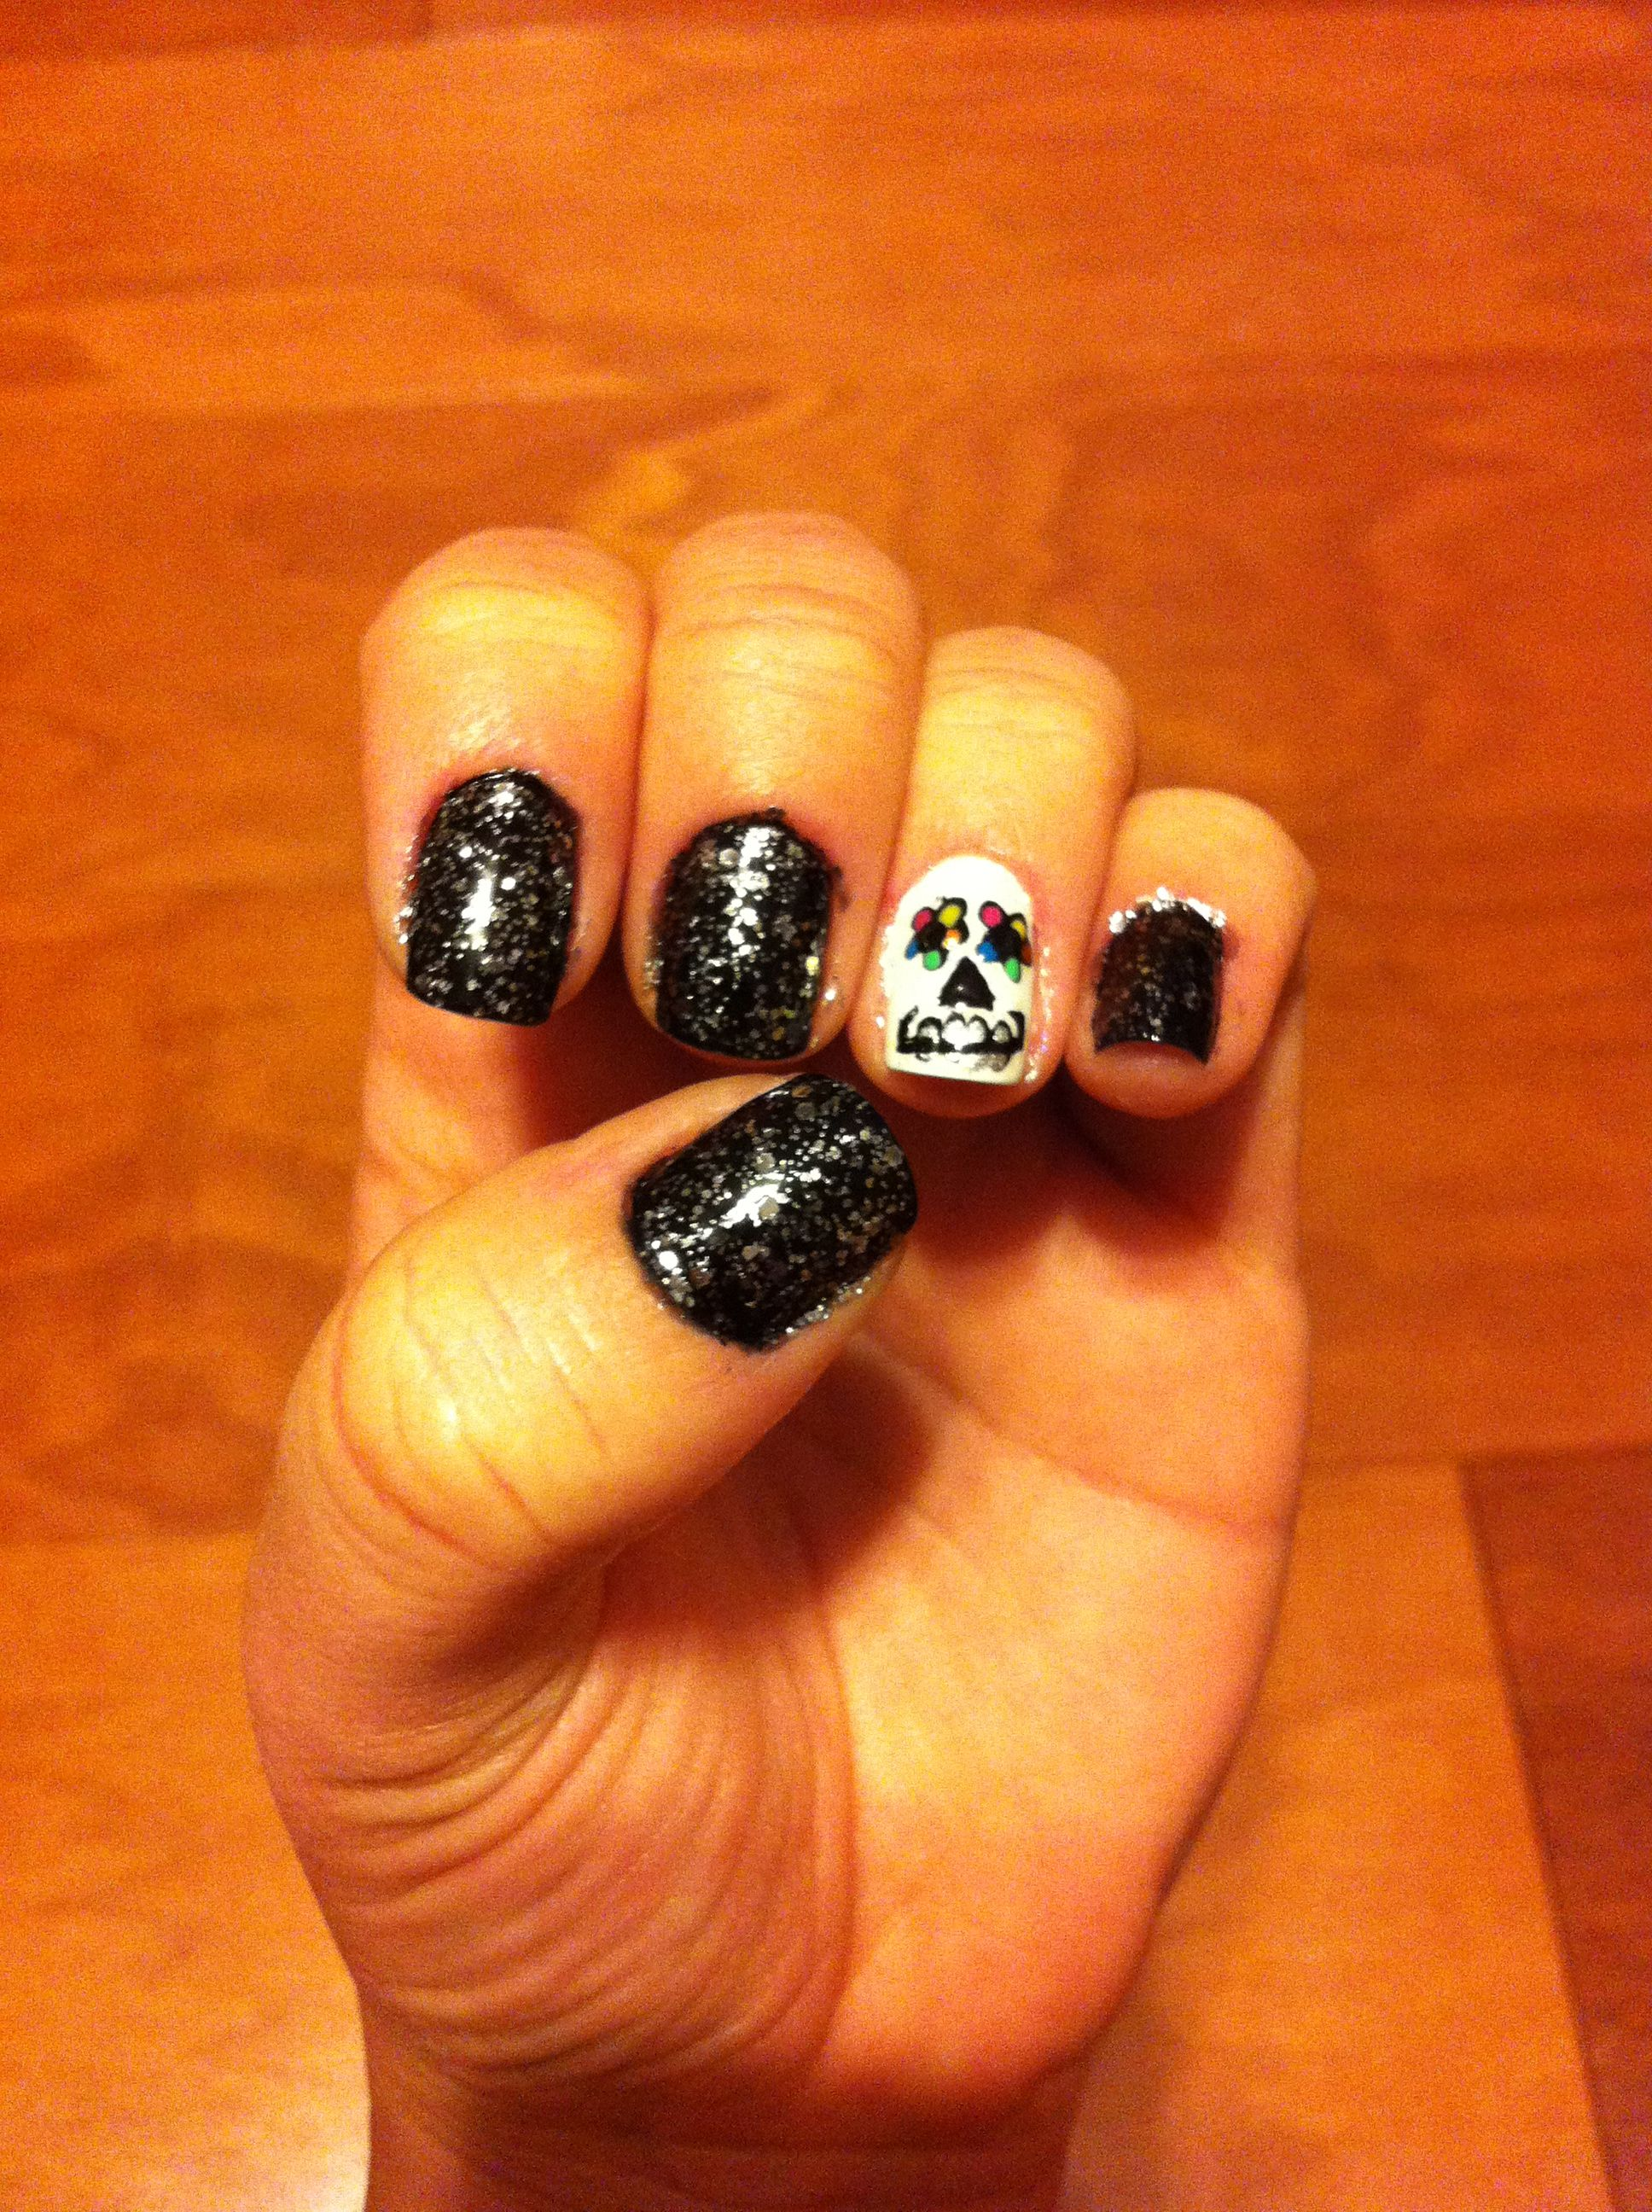 My Halloween sugar skull nails - OPI Metallic 4 Life ...